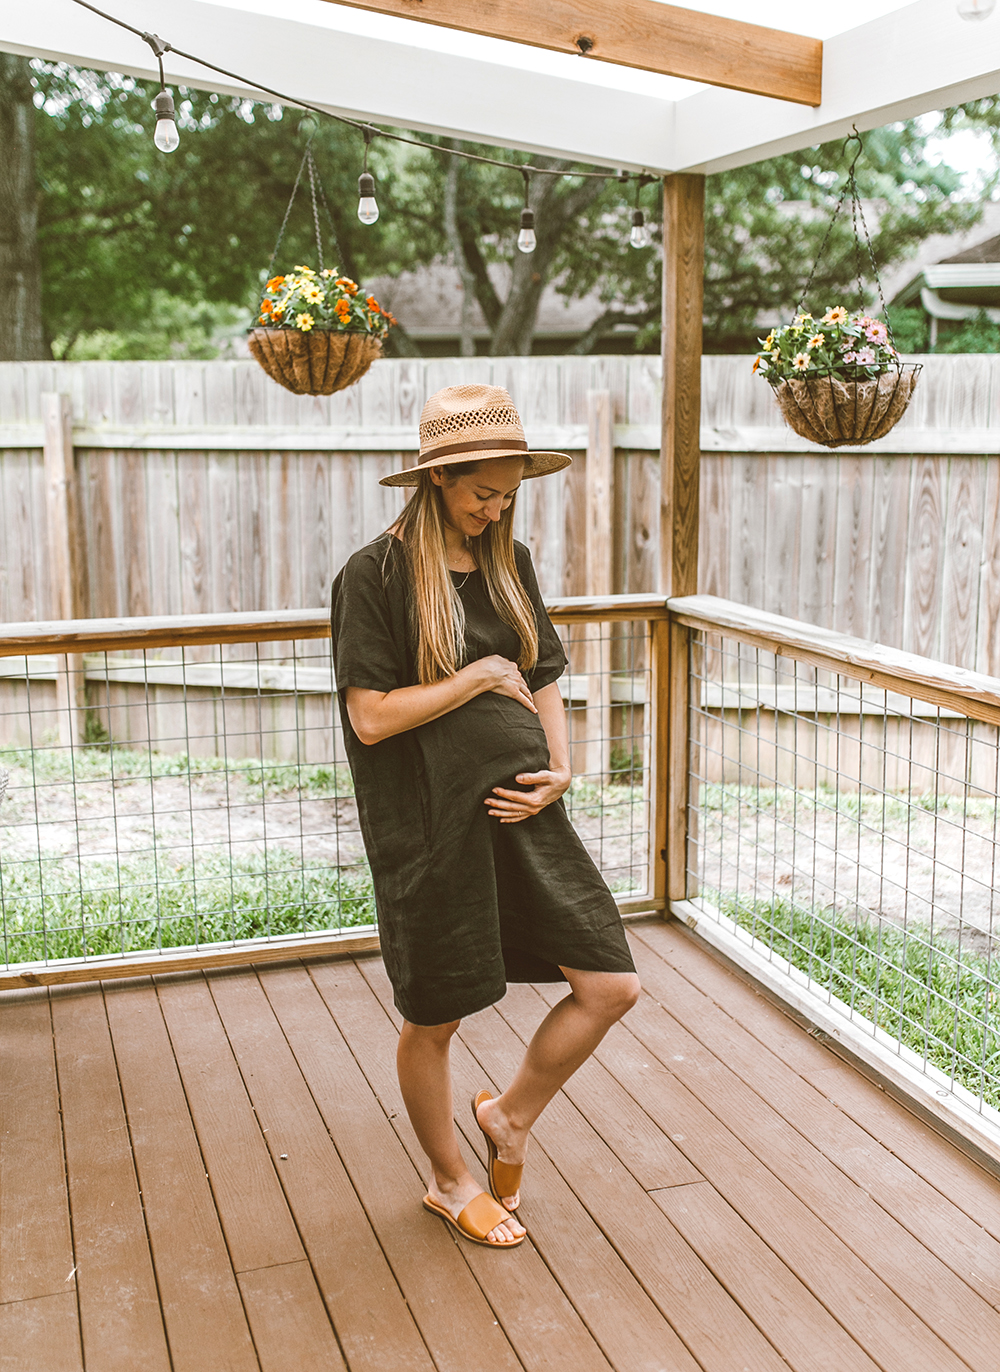 livvyland-blog-olivia-watson-linen-shift-dress-eileen-fisher-organic-handkerchief-boxy-dress-austin-texas-patio-pregnancy-summer-outfit-1